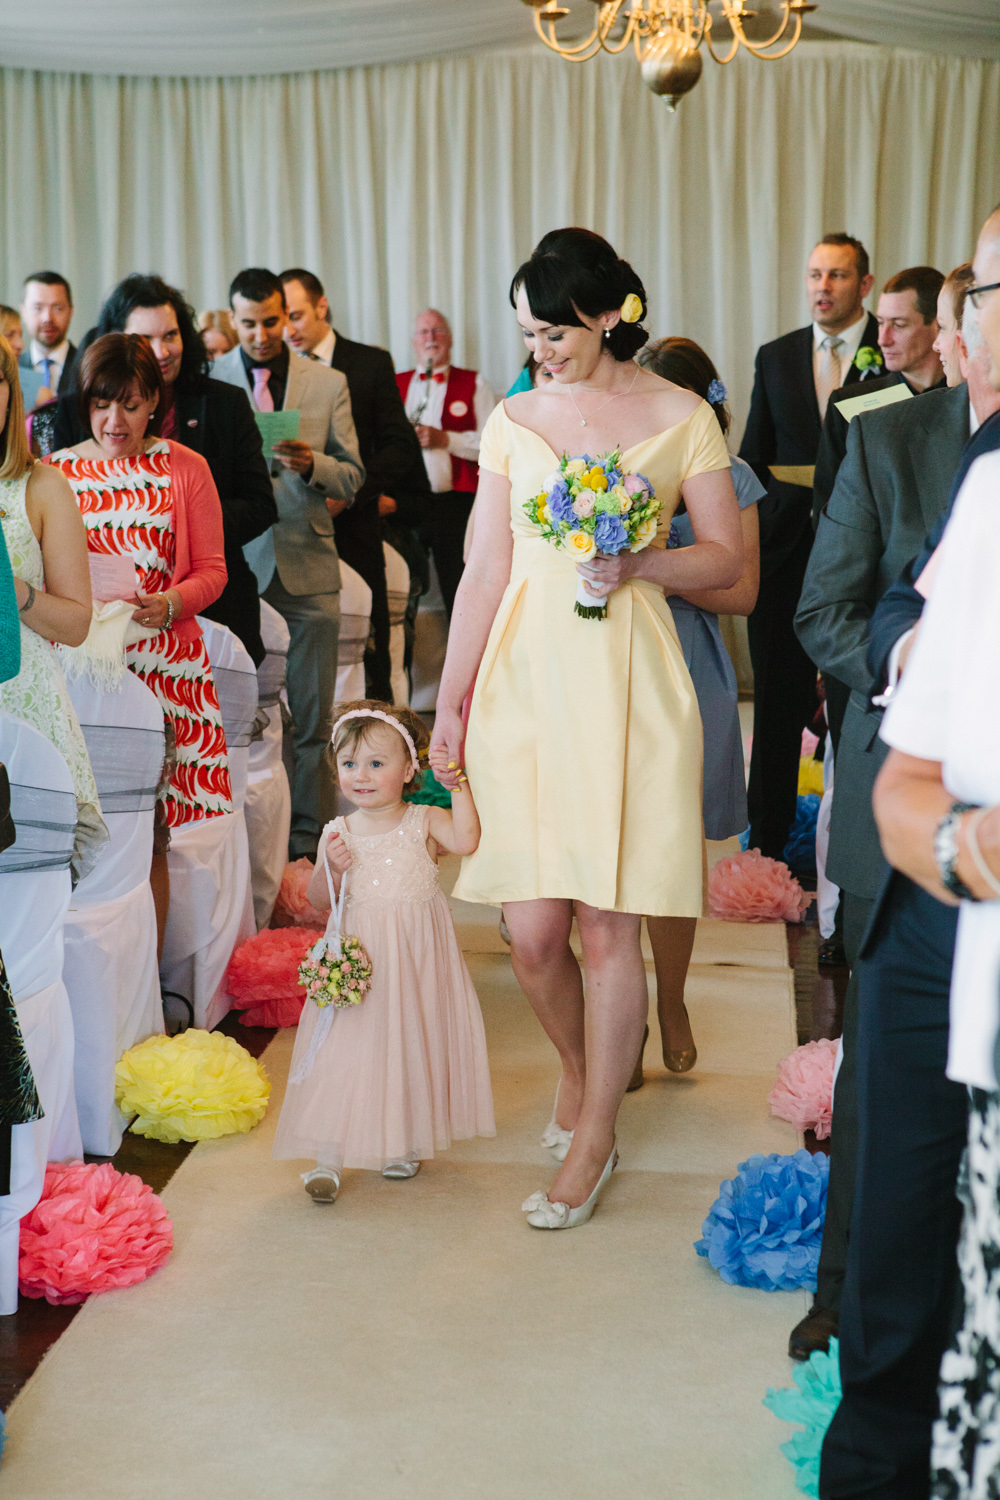 rmw-kate-holor-wedding-by-lee-allen-64-of-121